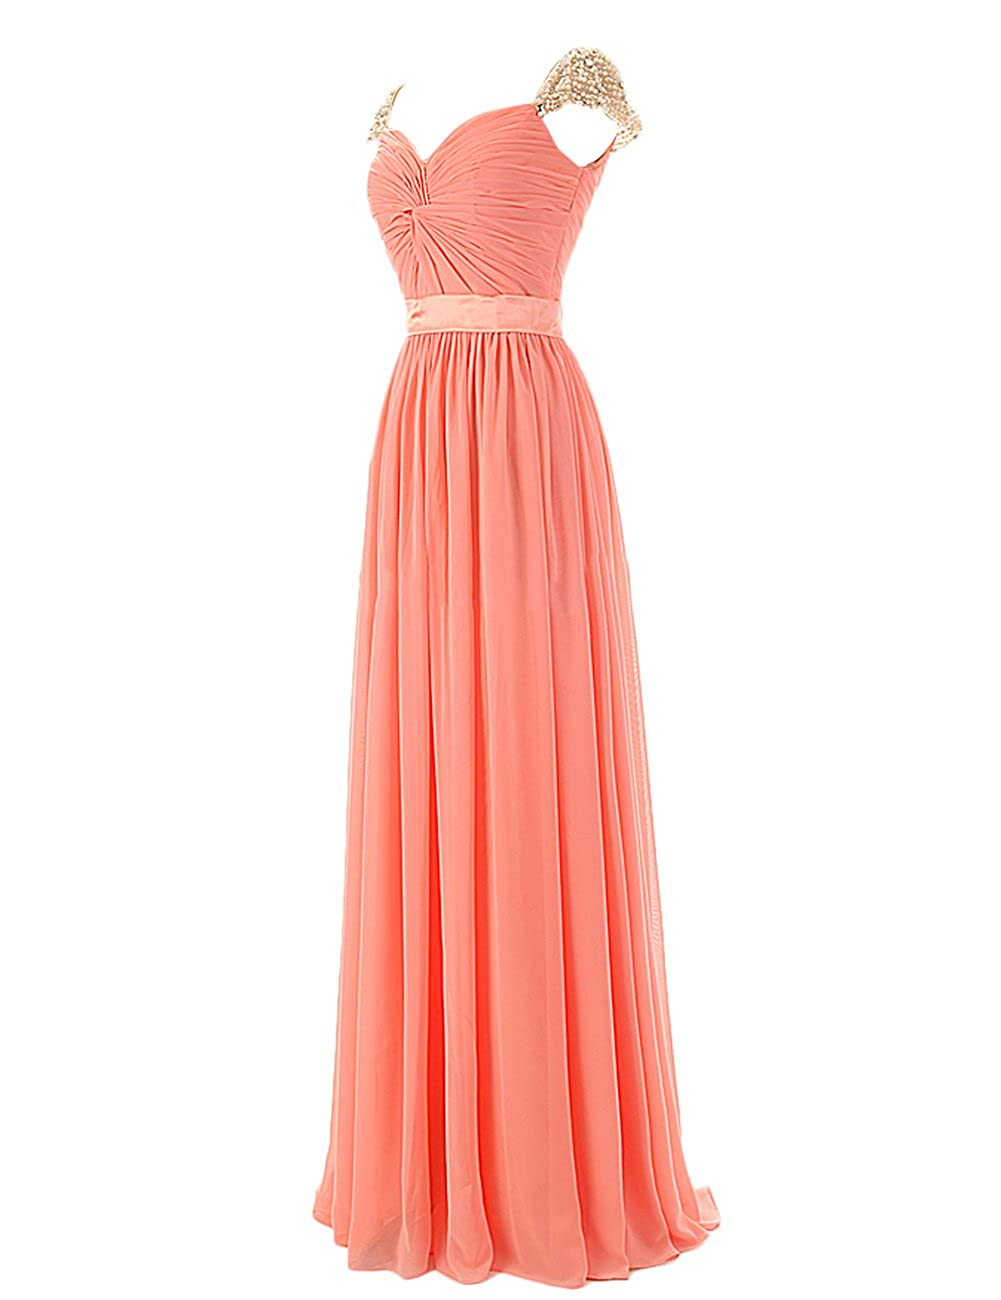 Dresstells Ruffles Off The Shoulder Evening Party Formal Prom Dress Pearls Empire Long Chiffon Dress: Amazon.co.uk: Clothing